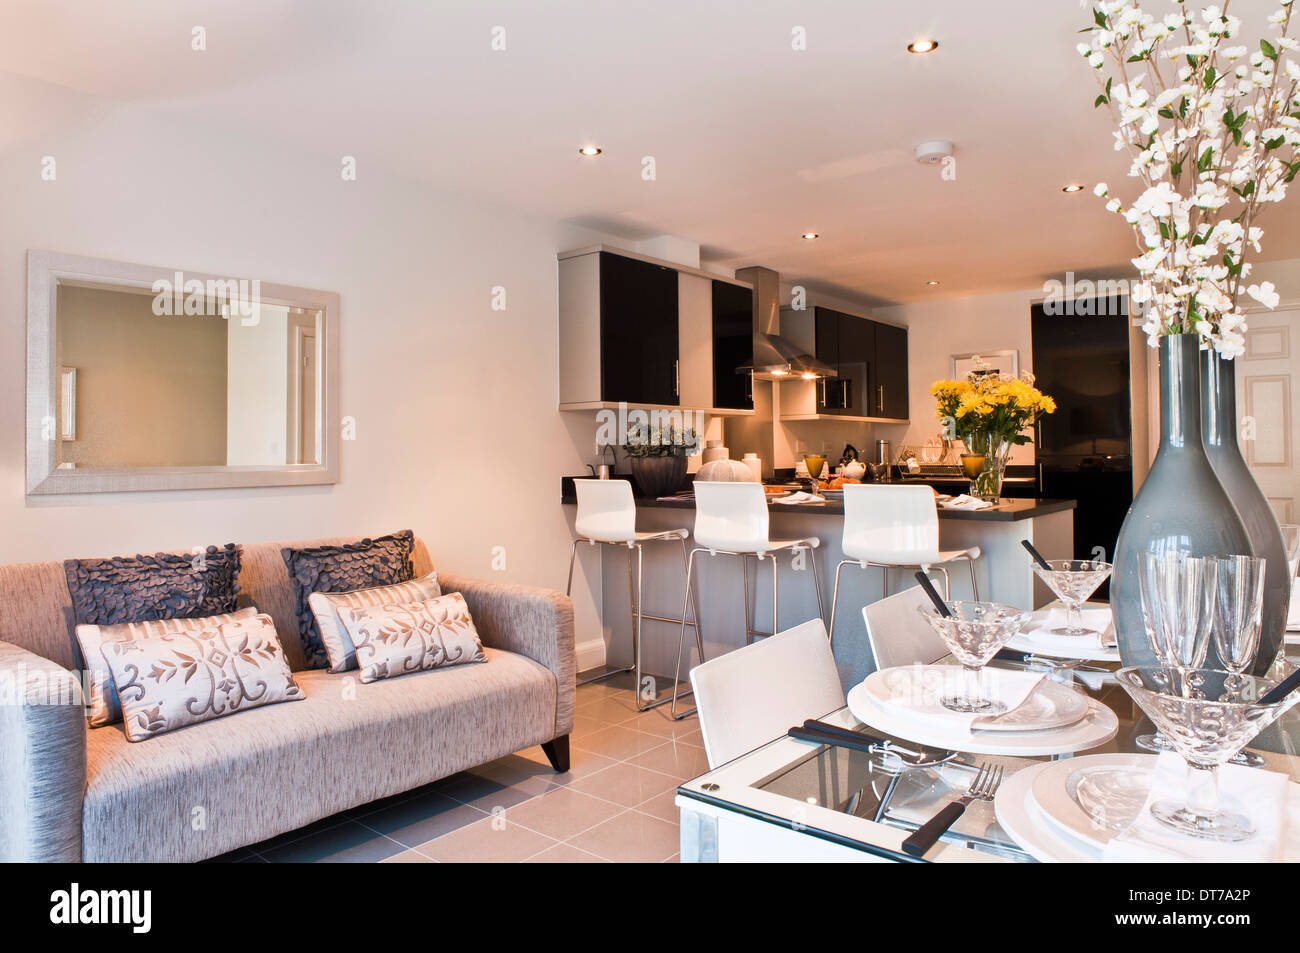 Show home kitchen / diner with sofa Stock Photo   Alamy